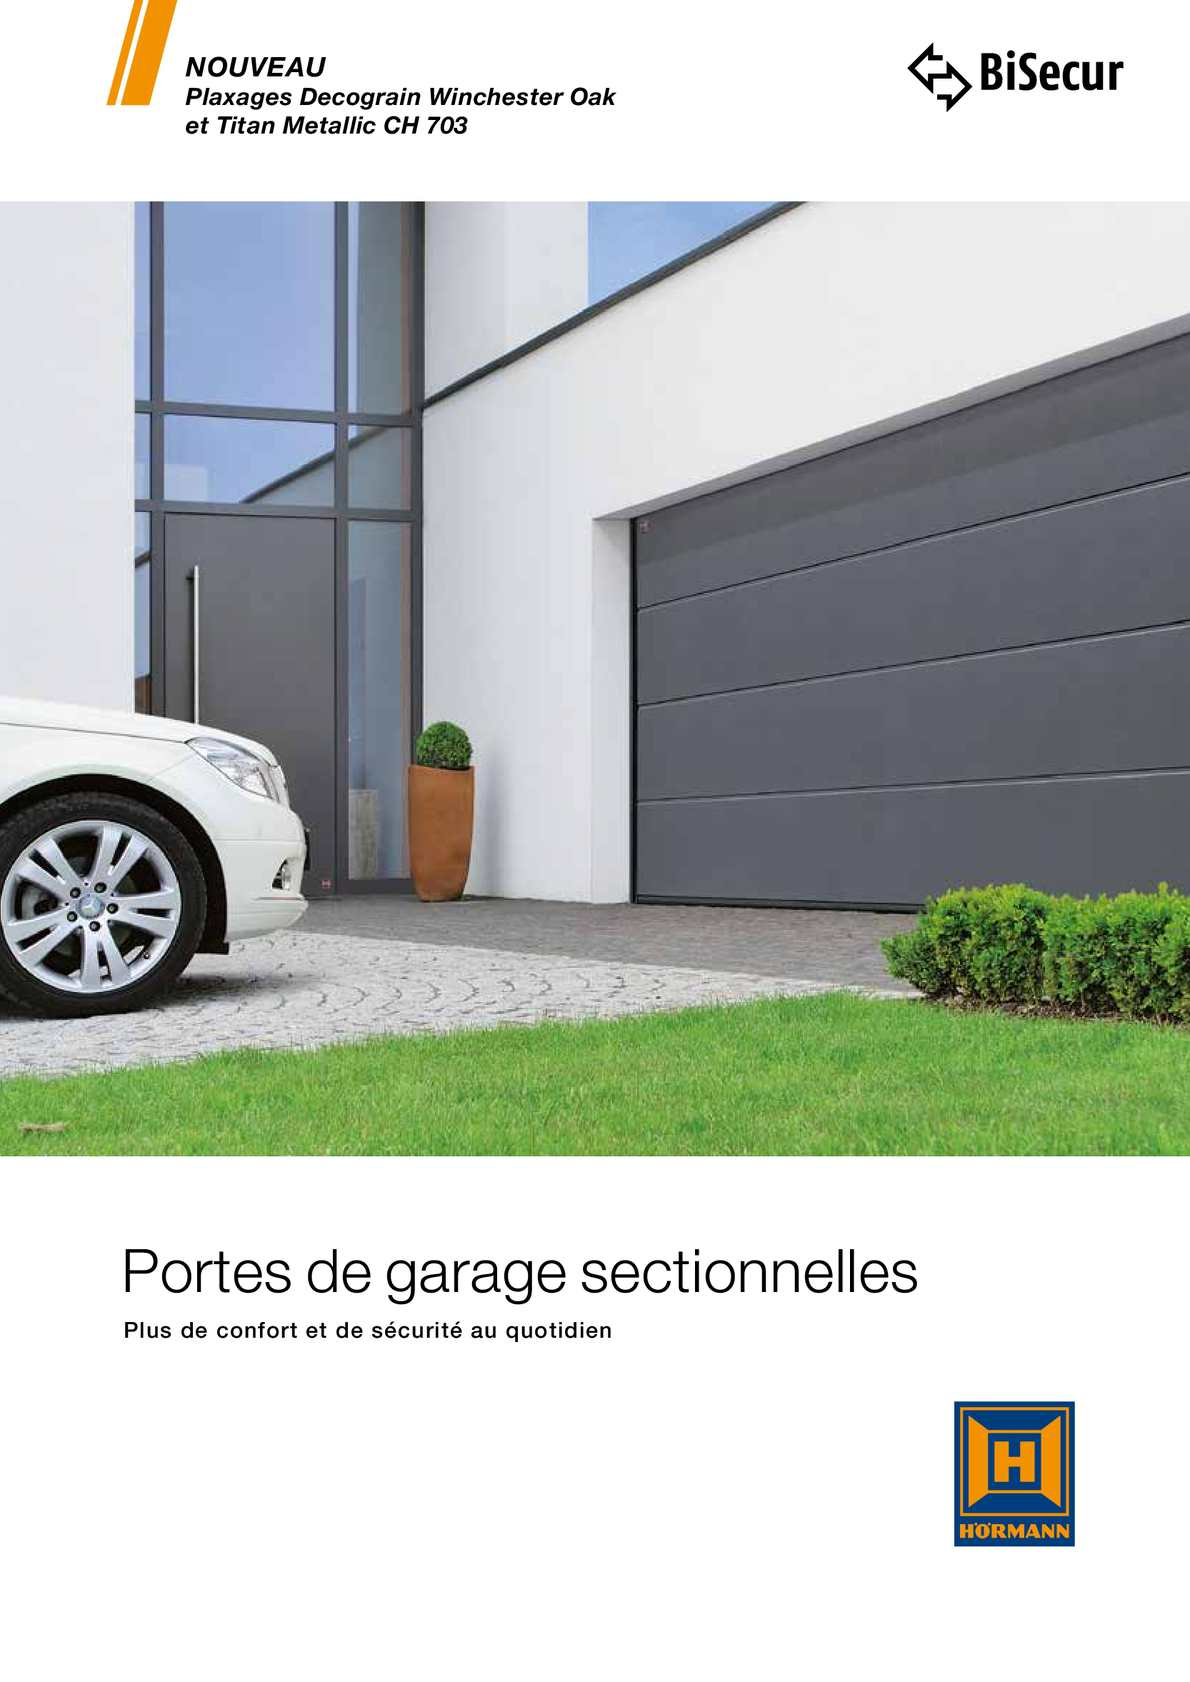 Calam o hormann porte de garage for Notice montage porte garage sectionnelle fame